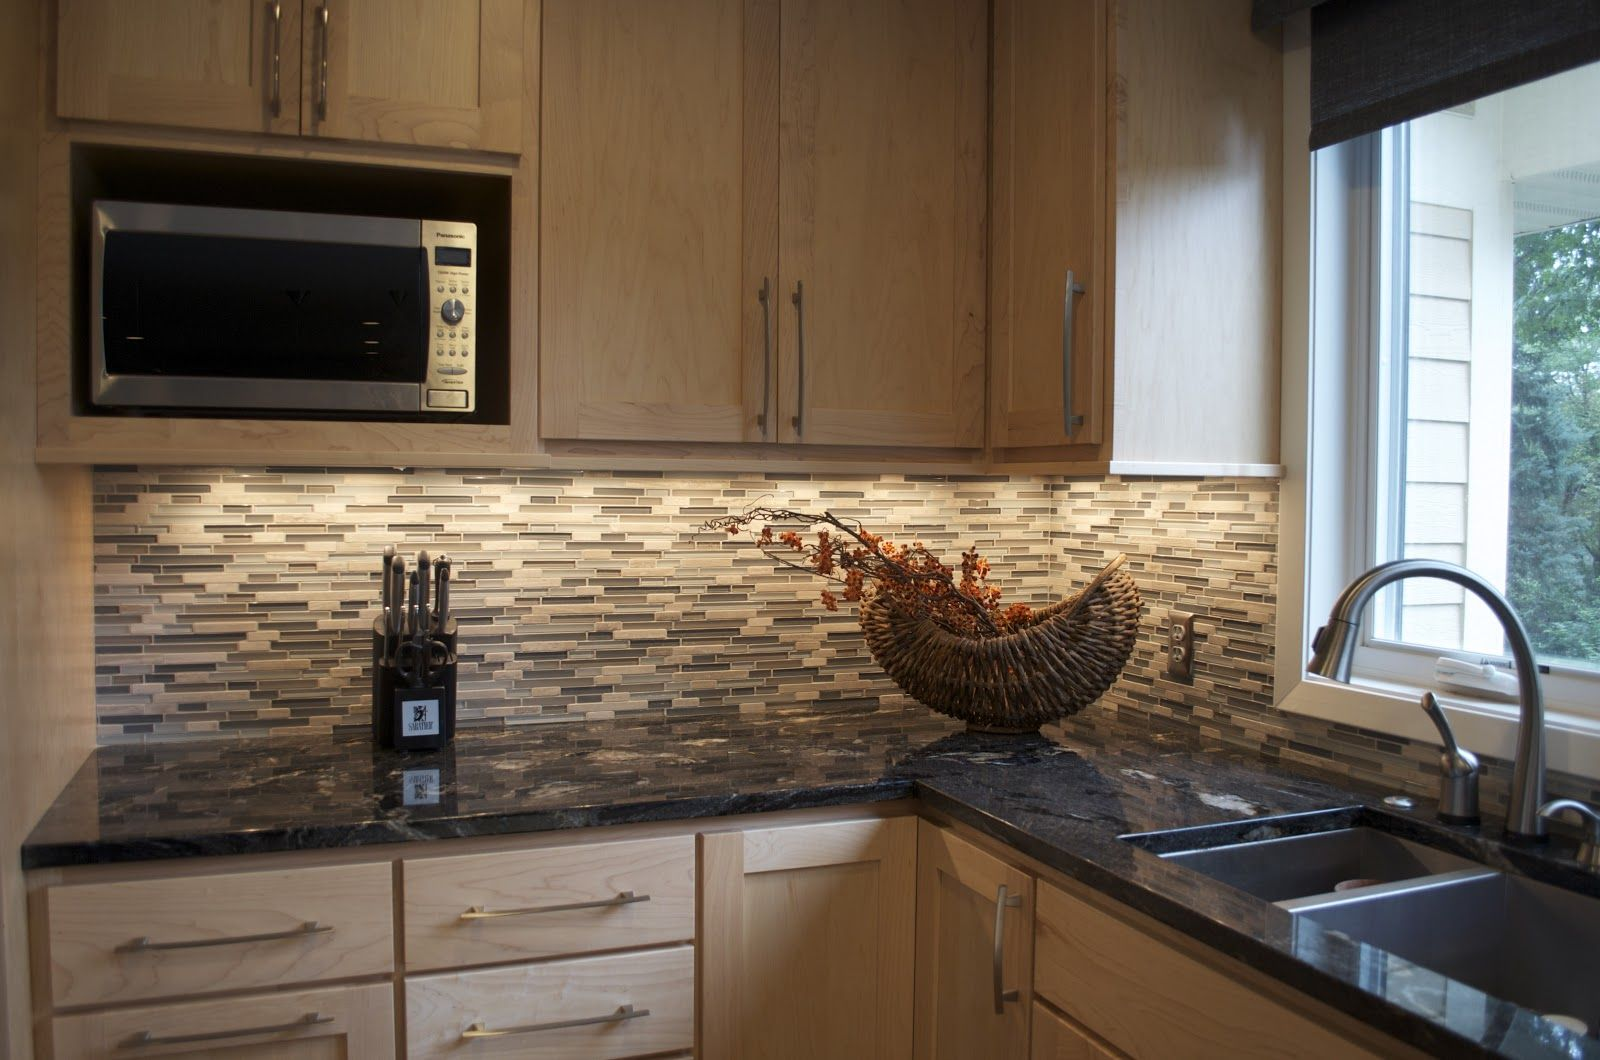 Maple Cabinet Backsplash Google Search Home Ideas Pinterest Maple Cabinets Kitchen Reno